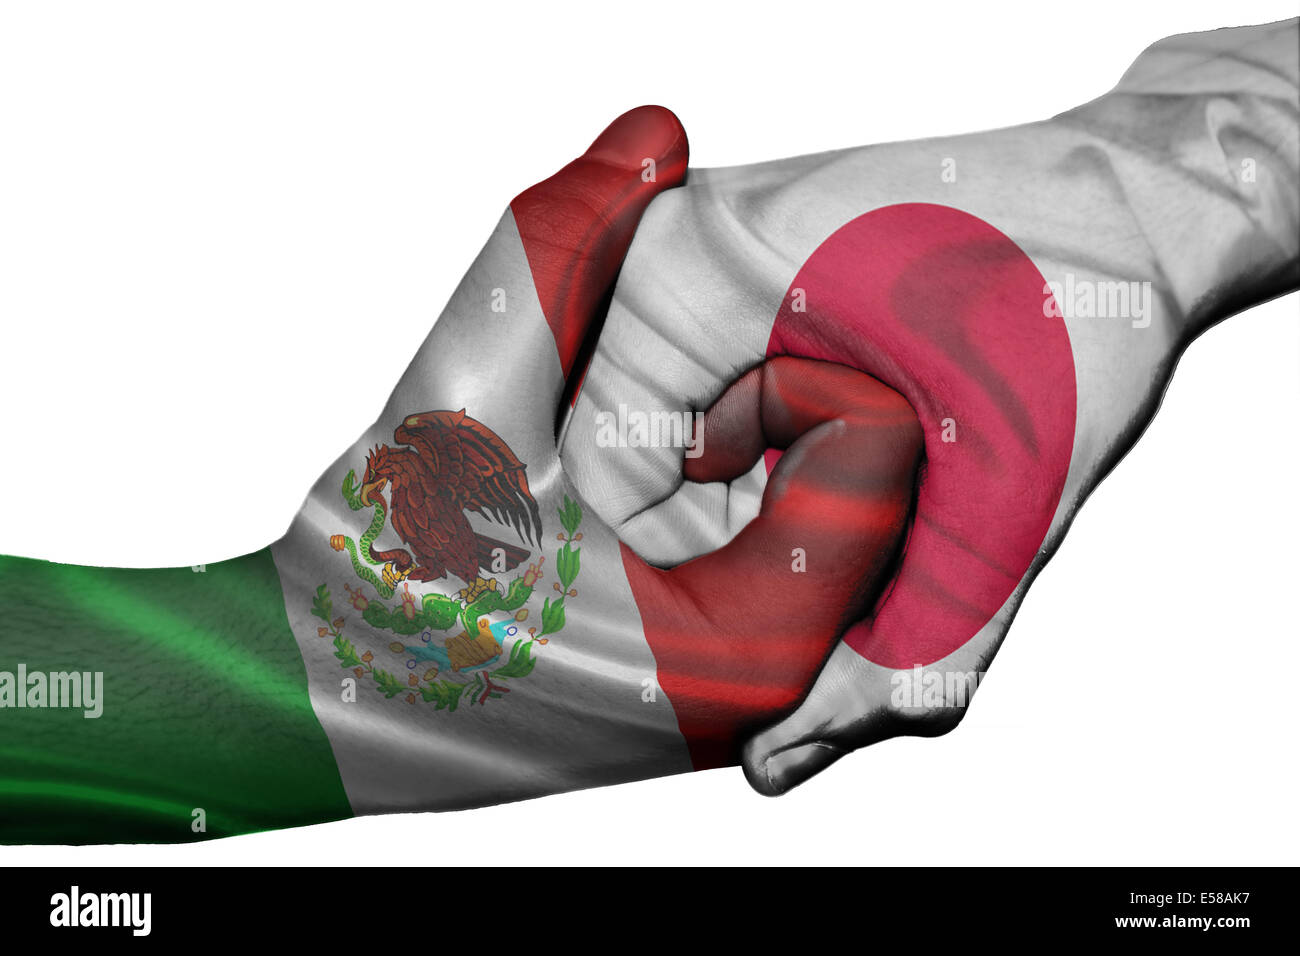 diplomatic handshake between countries flags of mexico and japan